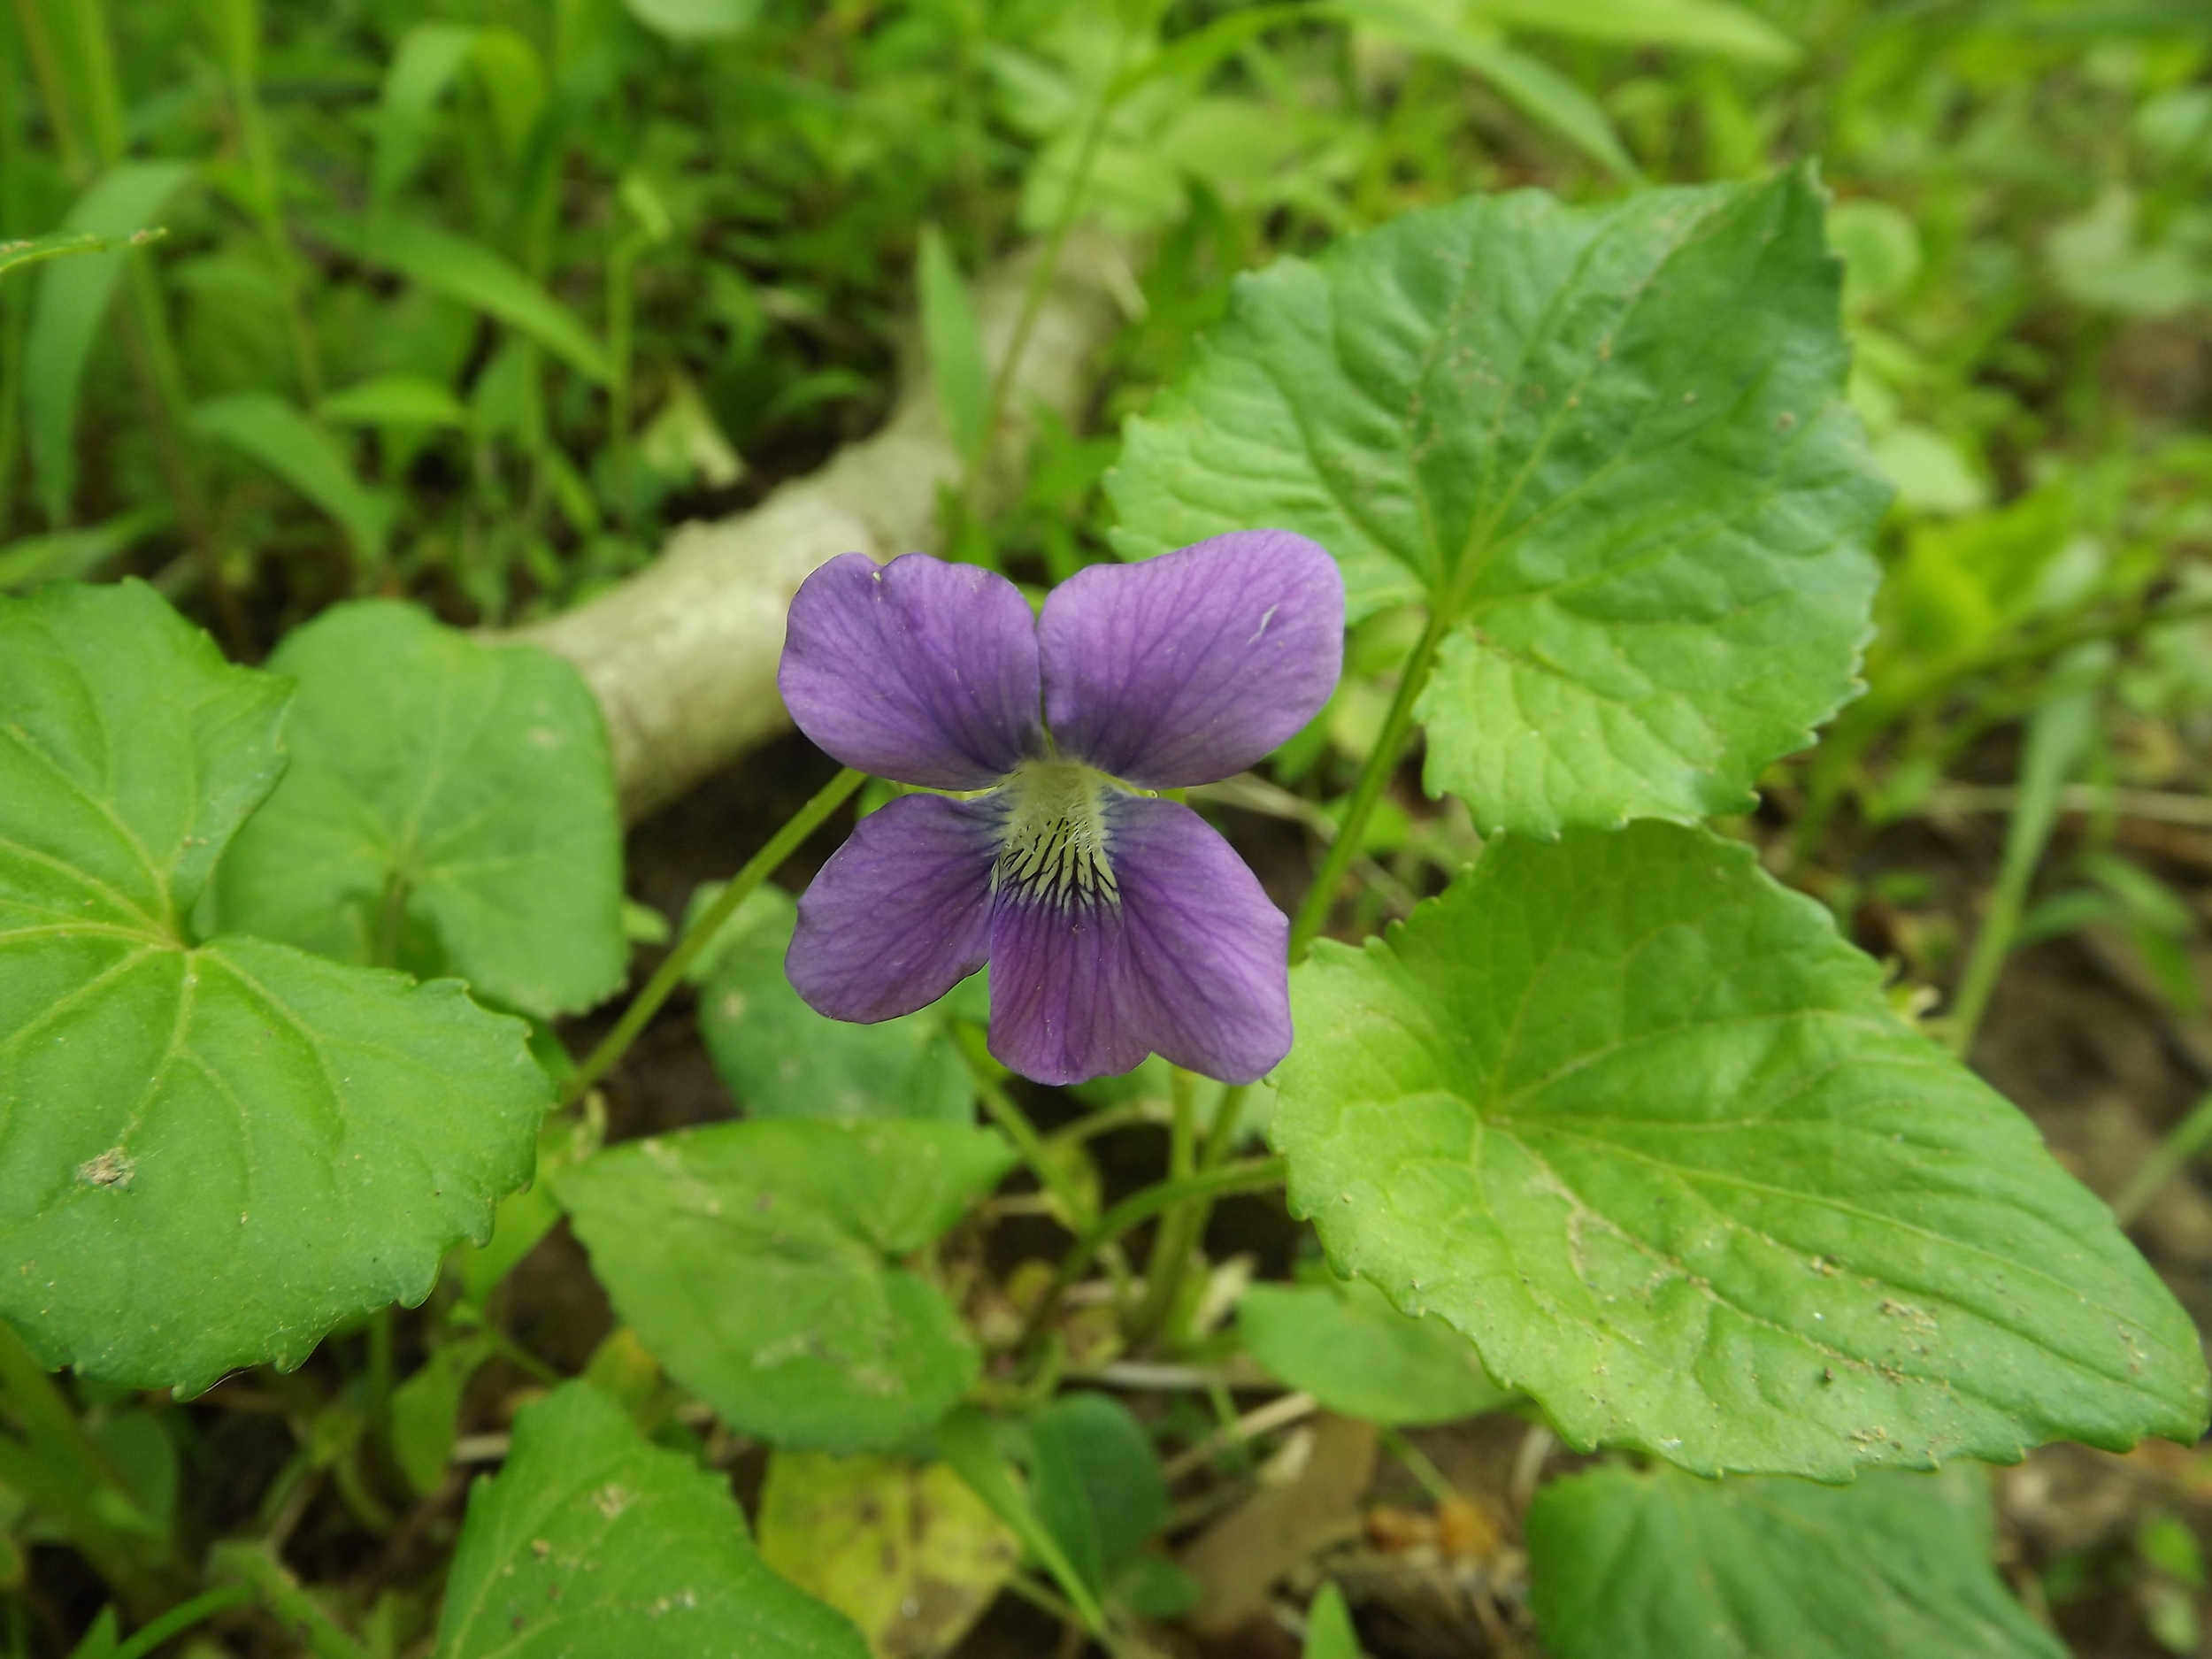 Common Blue Violet ( Viola sororia ) - There are still a few Common Blue Violets out in the woods, but I think we're nearing the end of their flowering season. Like all violets, the flowers and leaves are edible and were even used for some medicinal purposes by Native Americans.